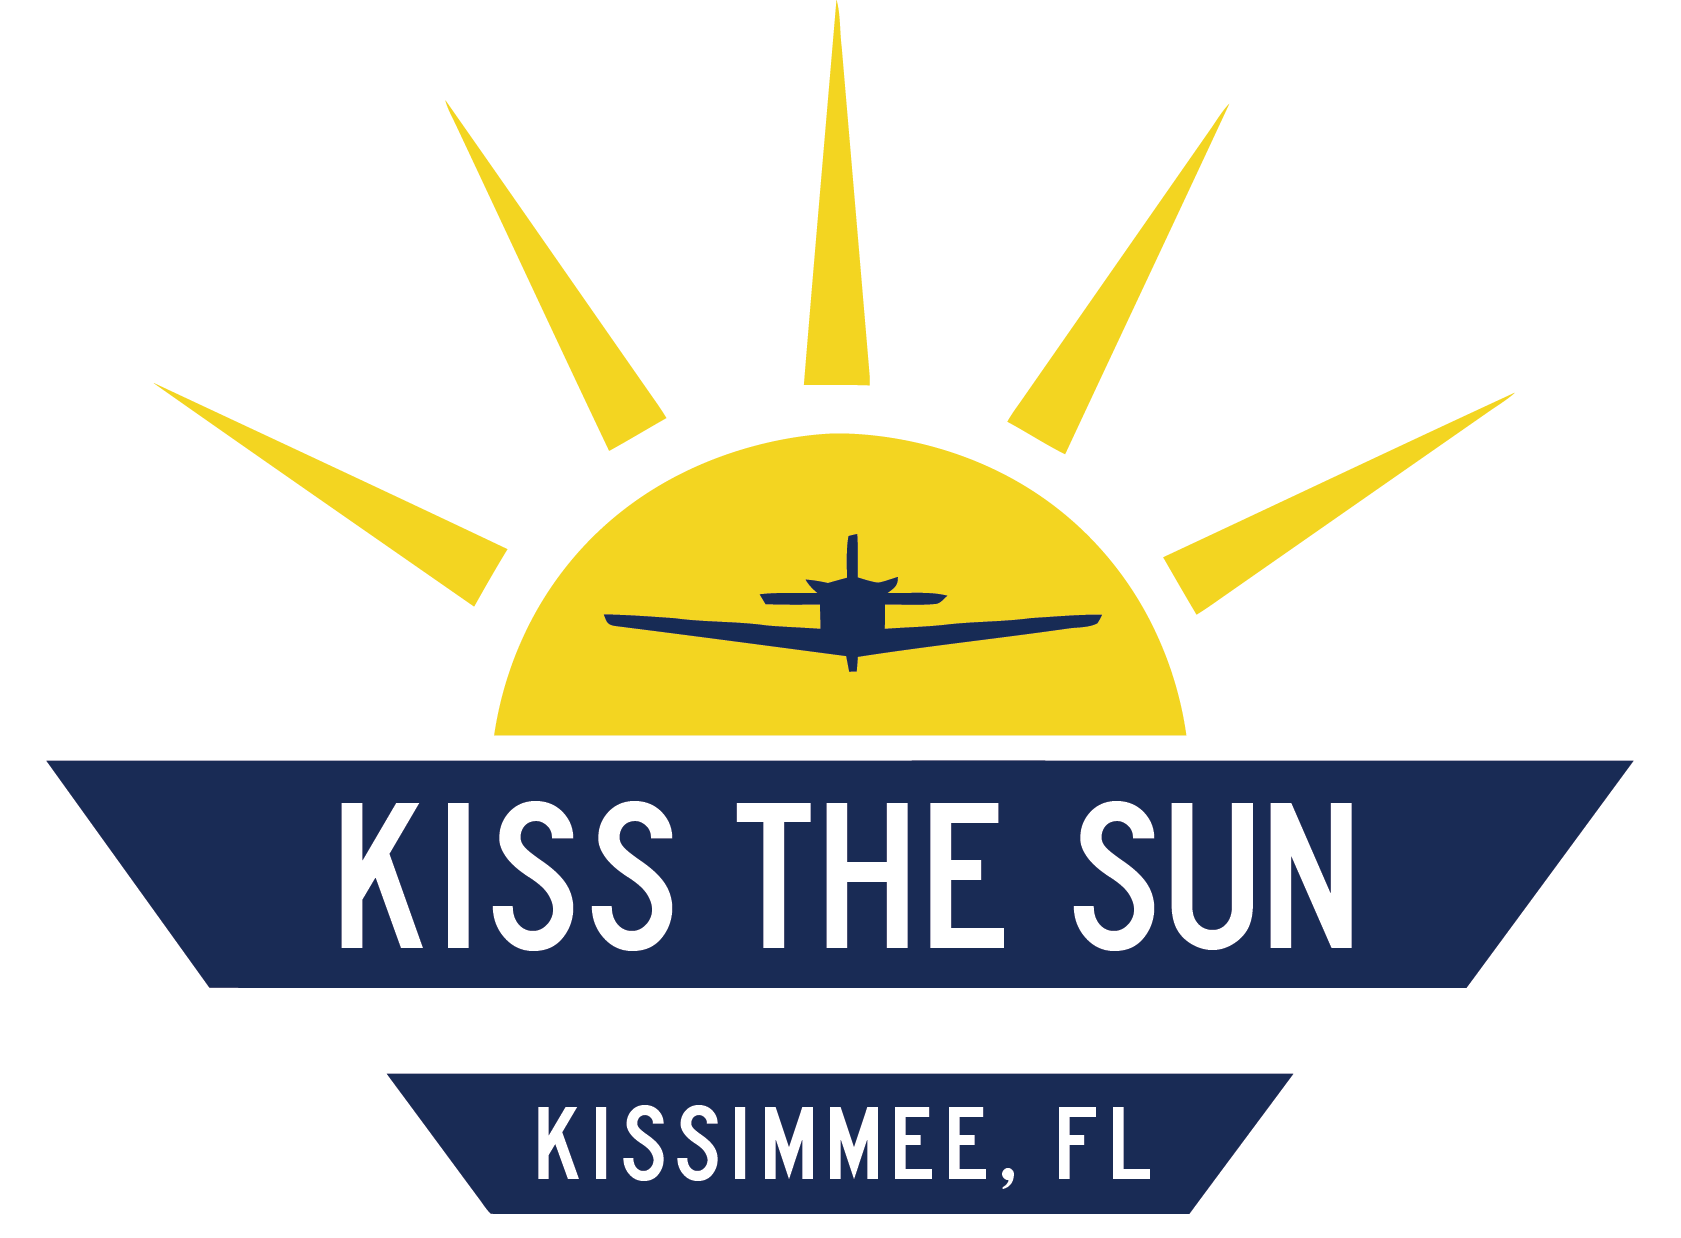 Kiss The Sun Flying Club